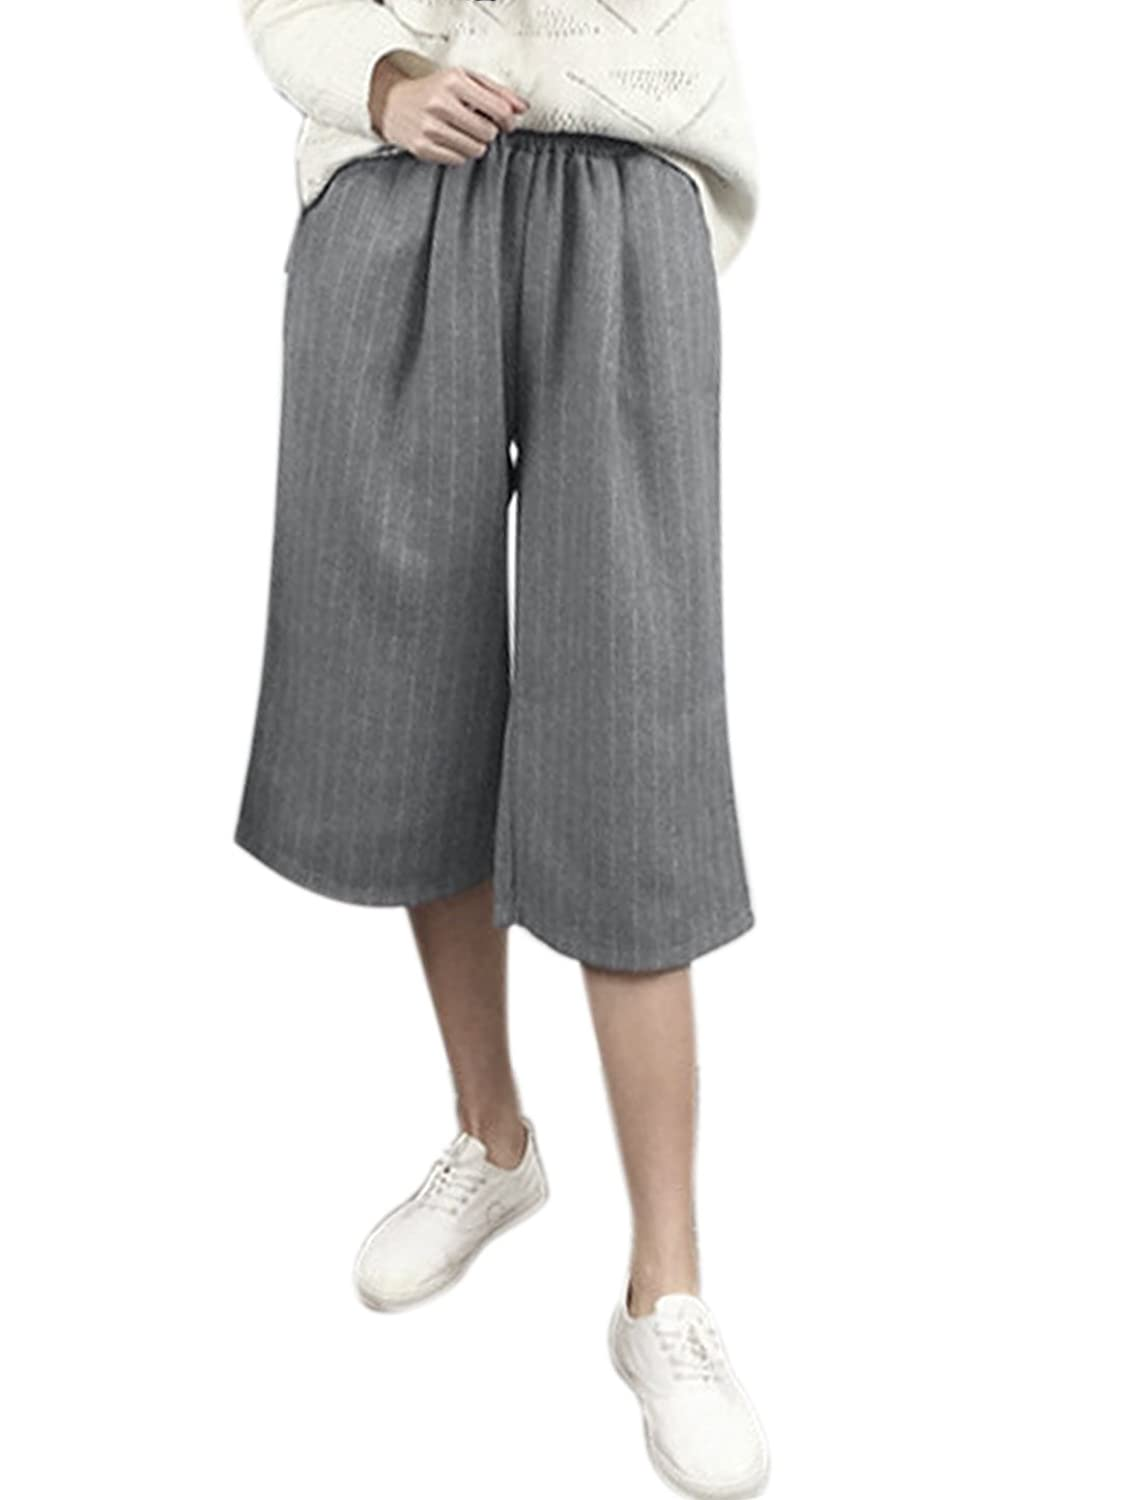 uxcell Women Slant Pockets High Waist Stripes Worsted Capris Culottes